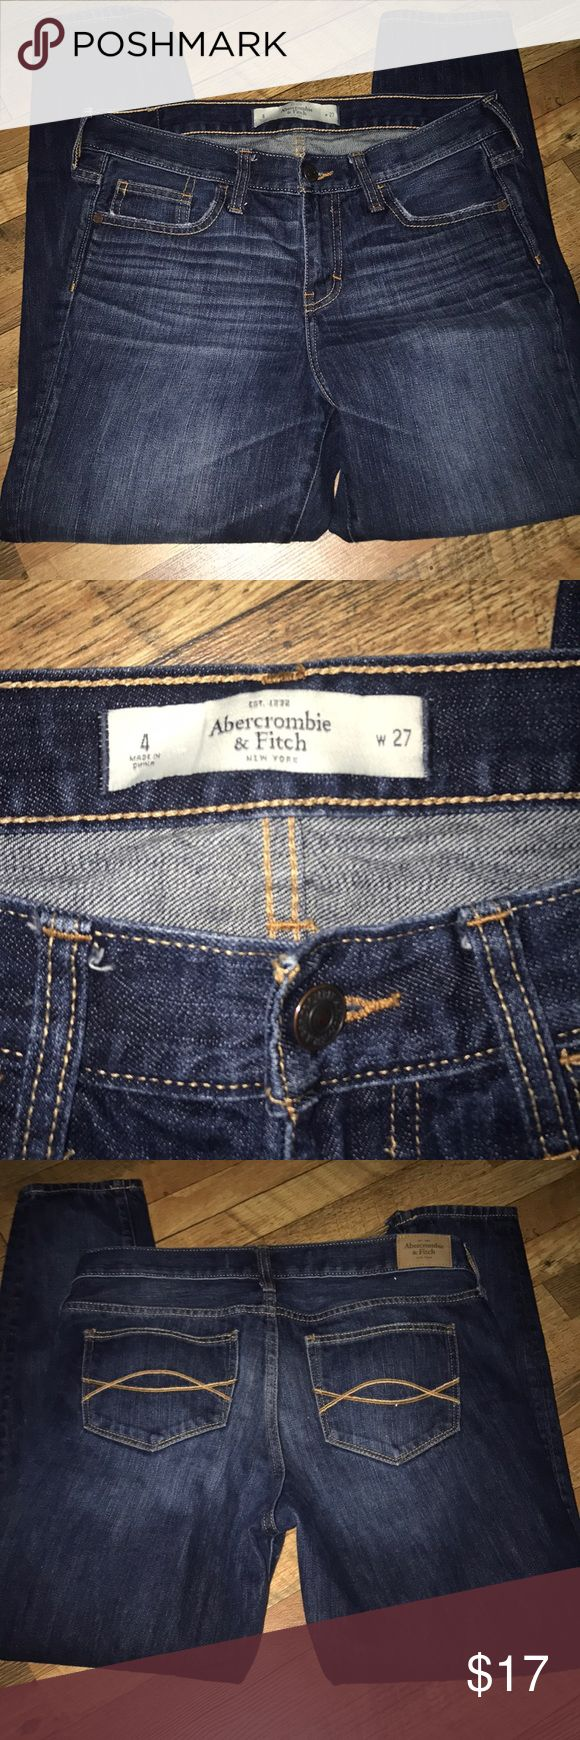 Abercrombie and Fitch women's ankle length jeans In excellent condition – see picture for inseam. (Bin 6) Abercrombie & Fitch Jeans Ankle & Cropped